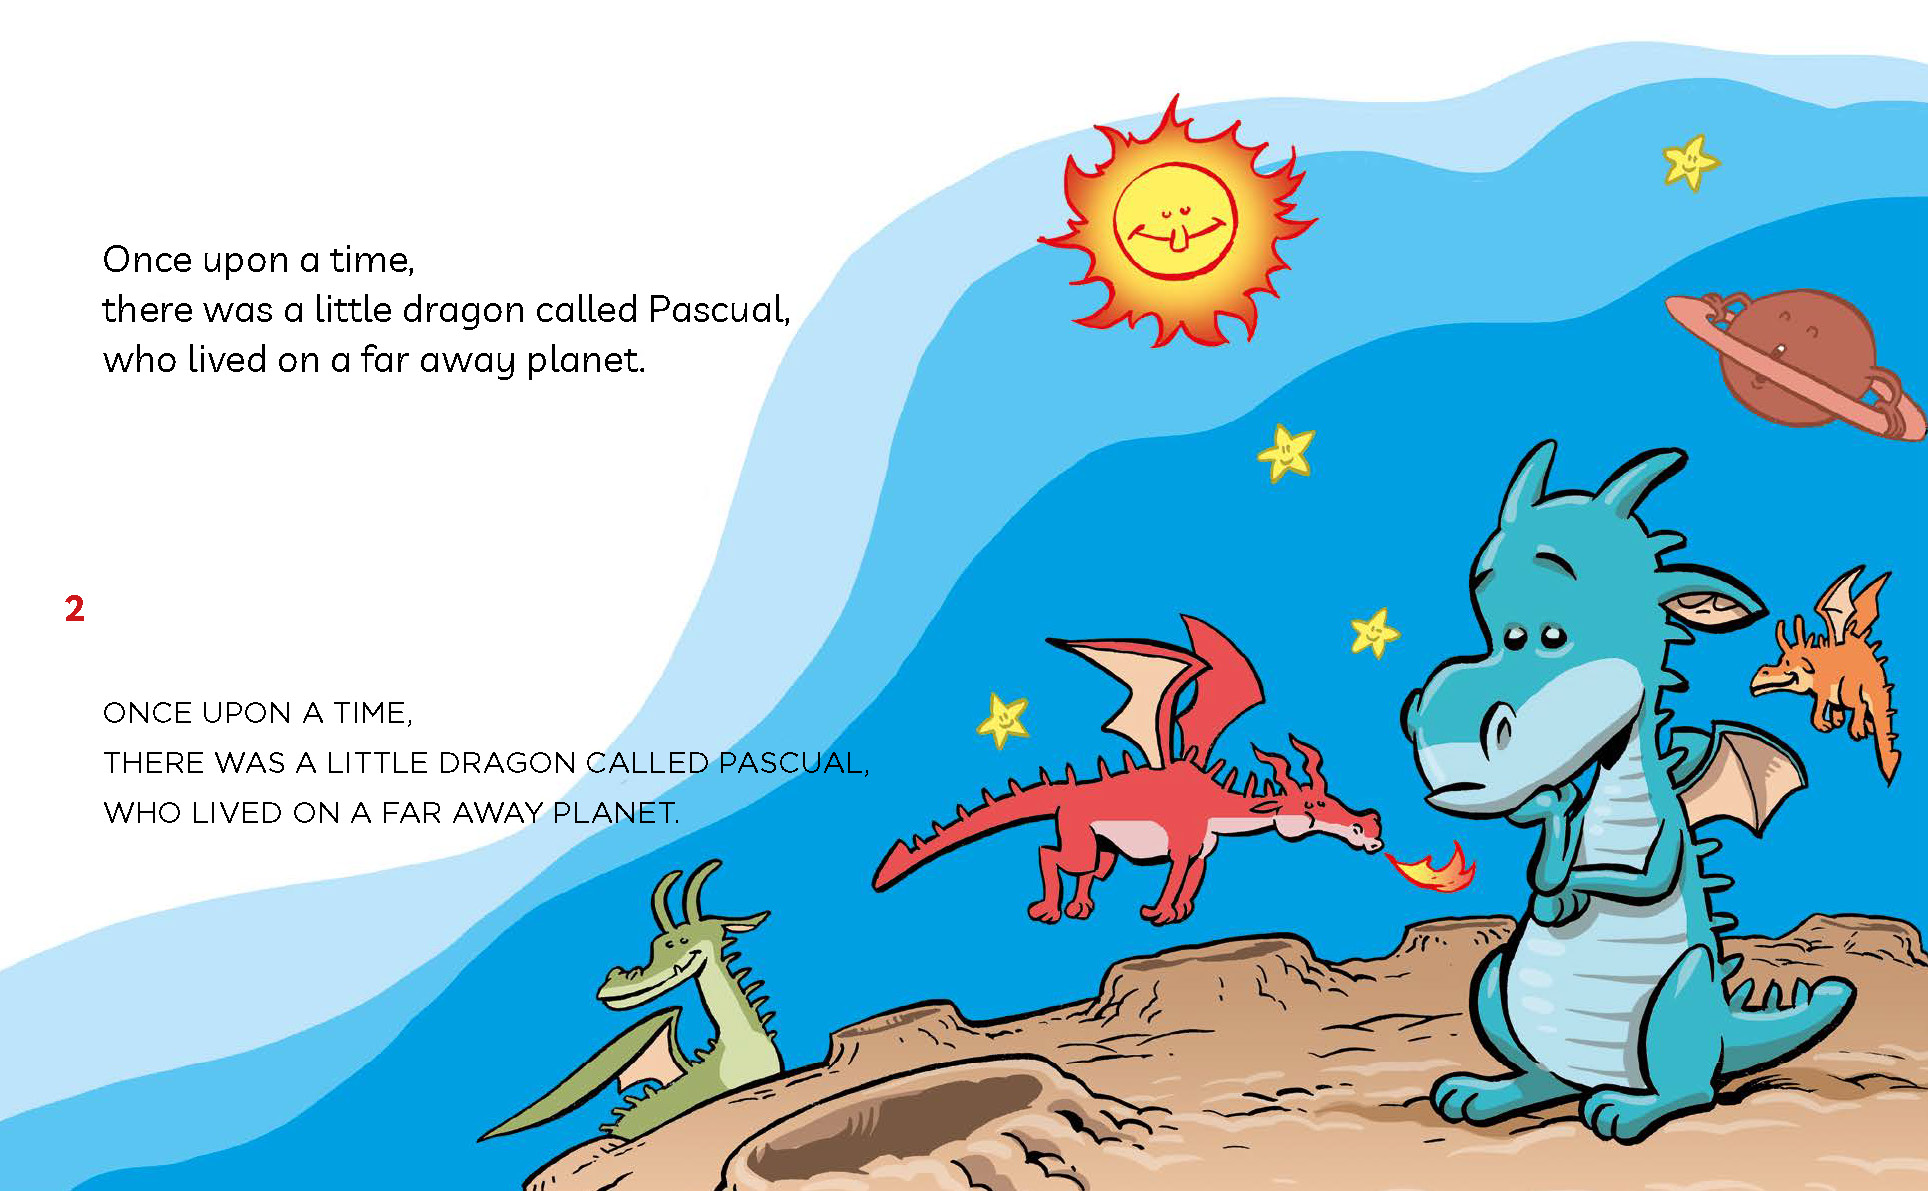 fireless dragon, dragons, children books, learn to read, capital letters, lower case, 5 year olds, kids books,